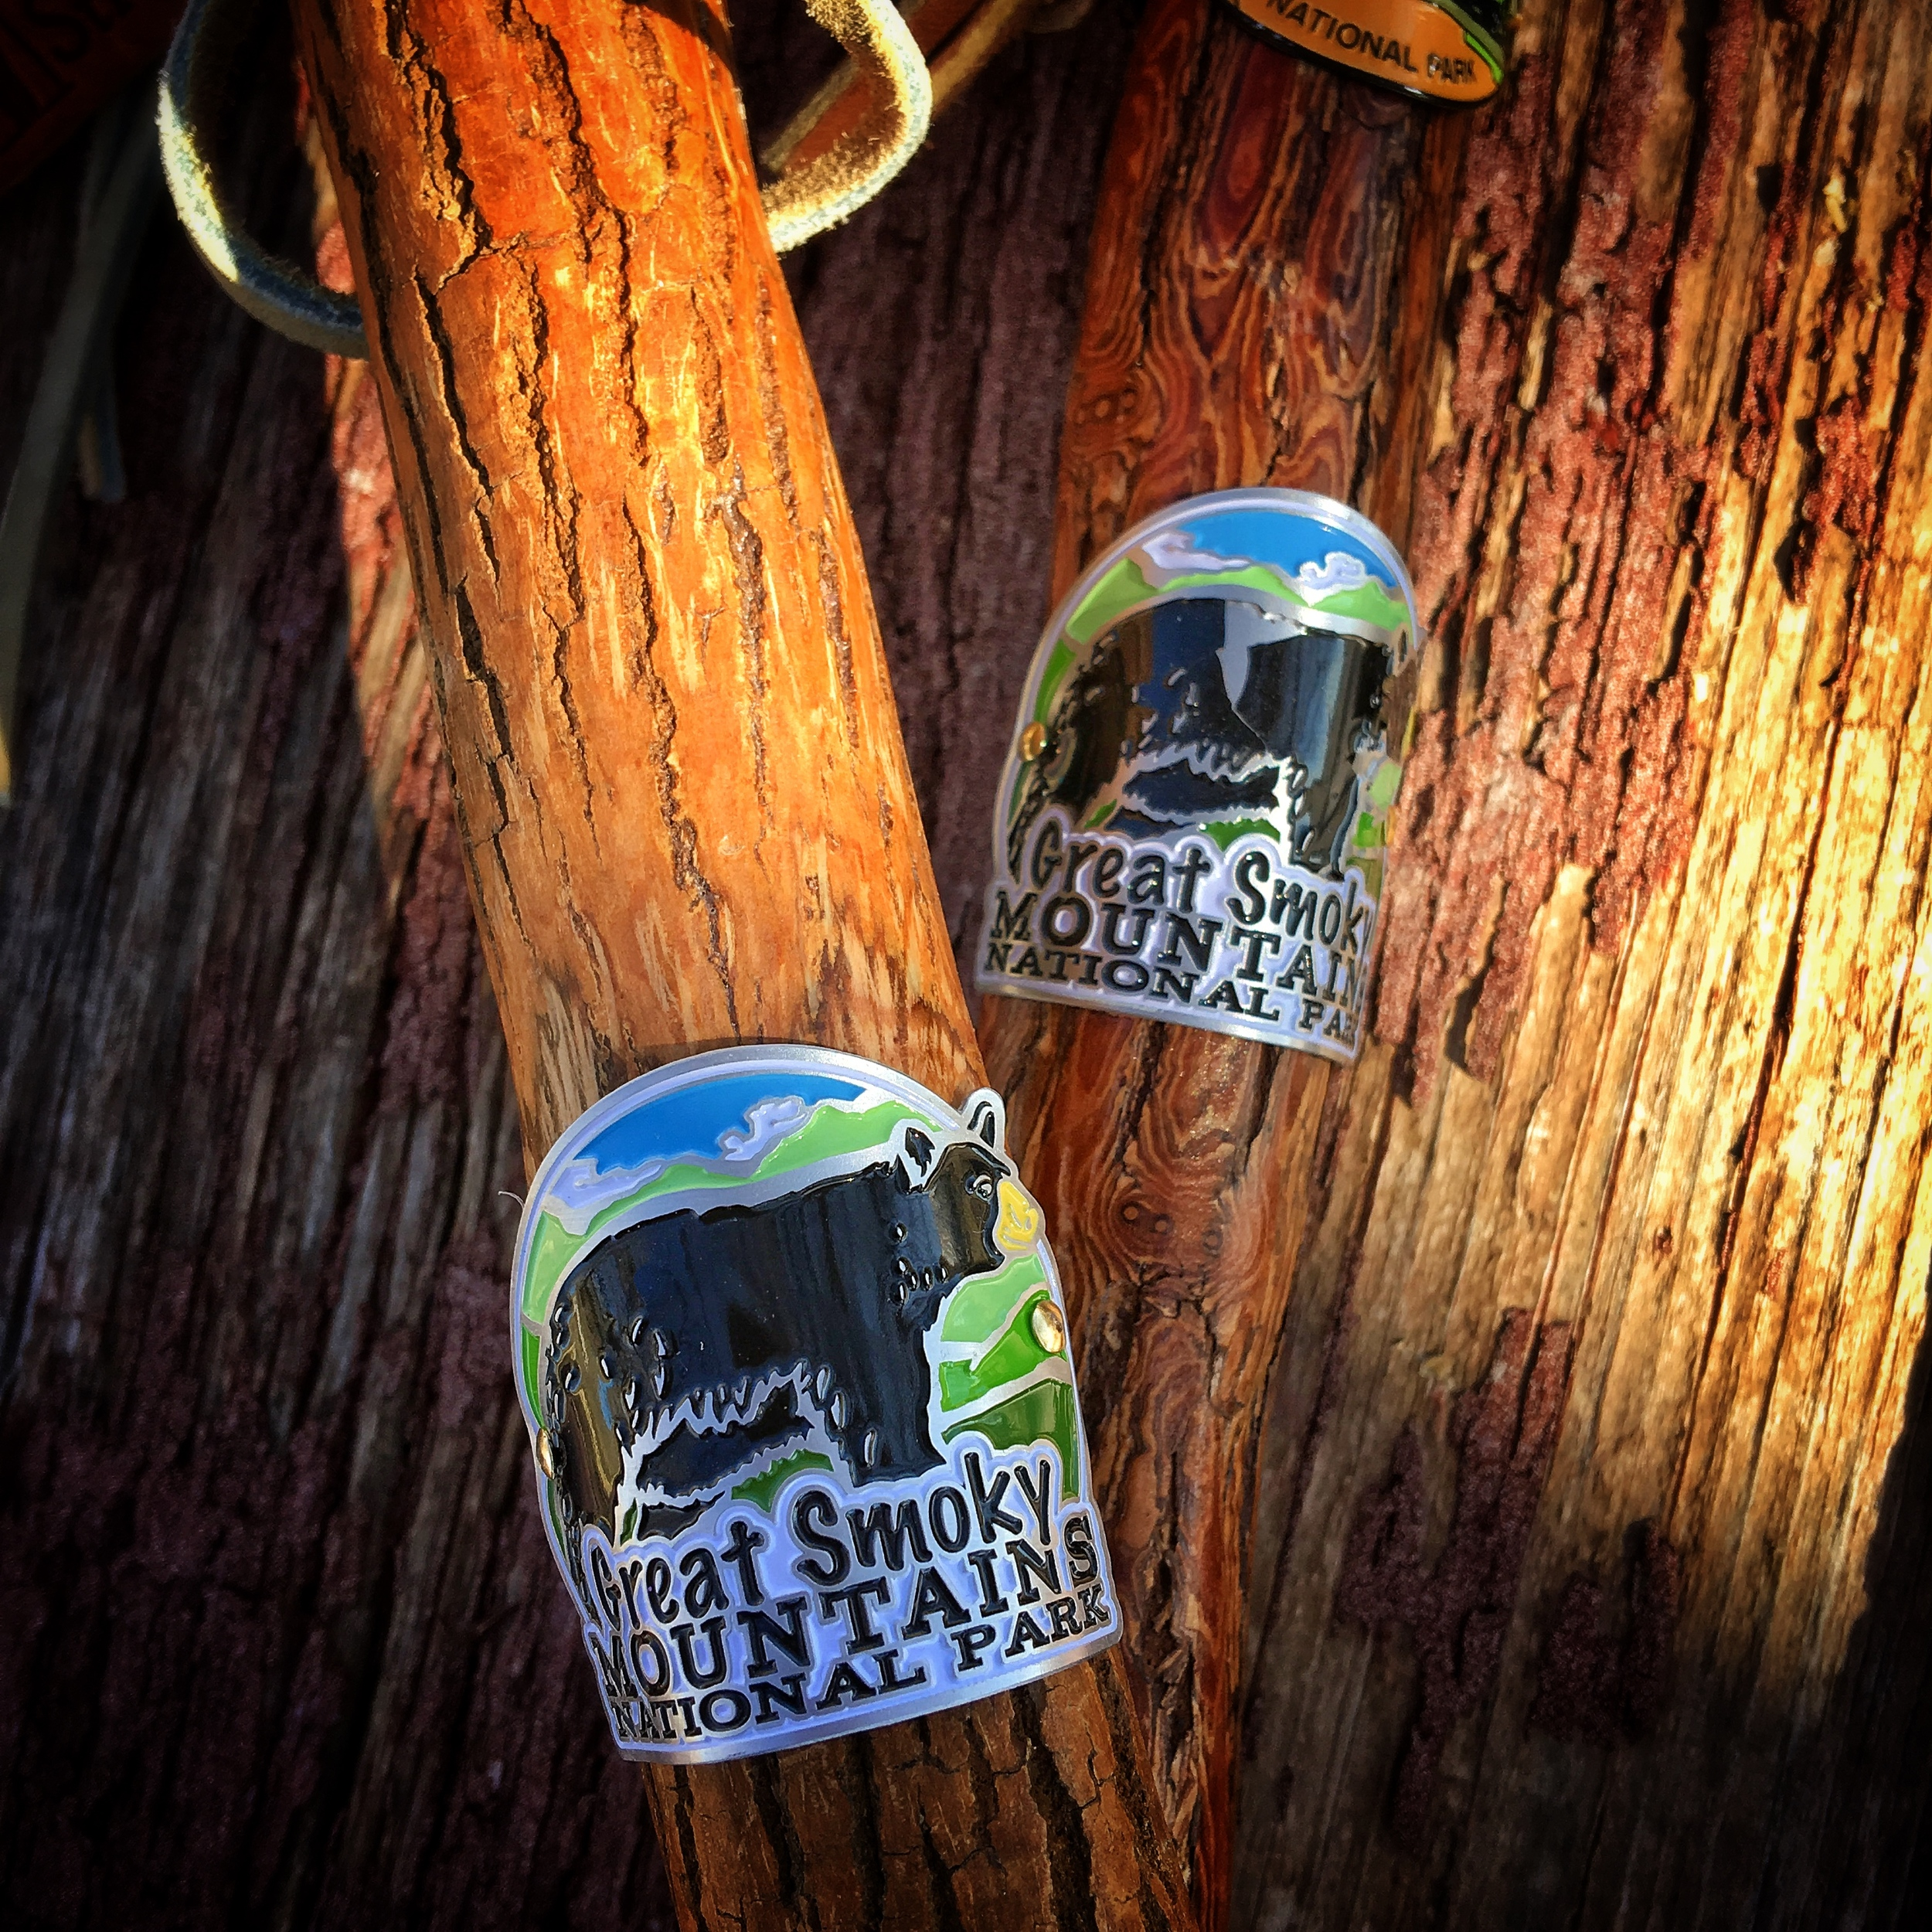 Hiking stick medallions for Great Smoky Mountains National Park